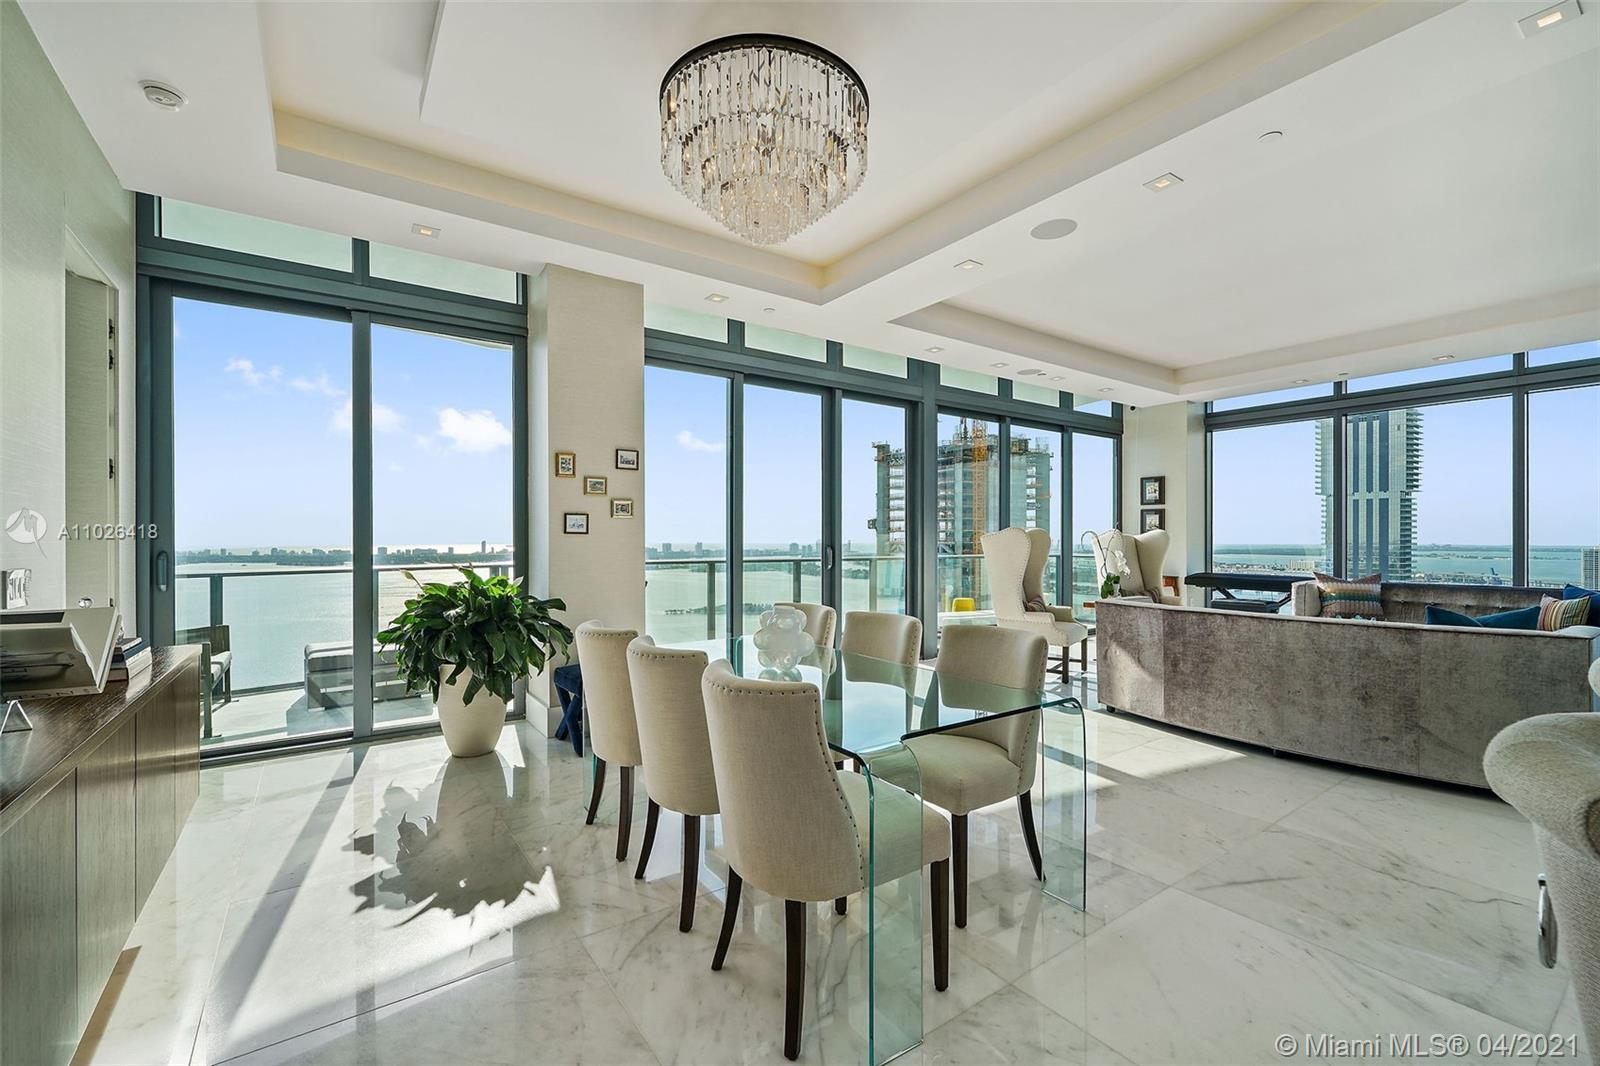 Impeccable PH 5beds/4.5baths - 11ft ceiling - breathtaking bay, ocean & city views. Custom designed